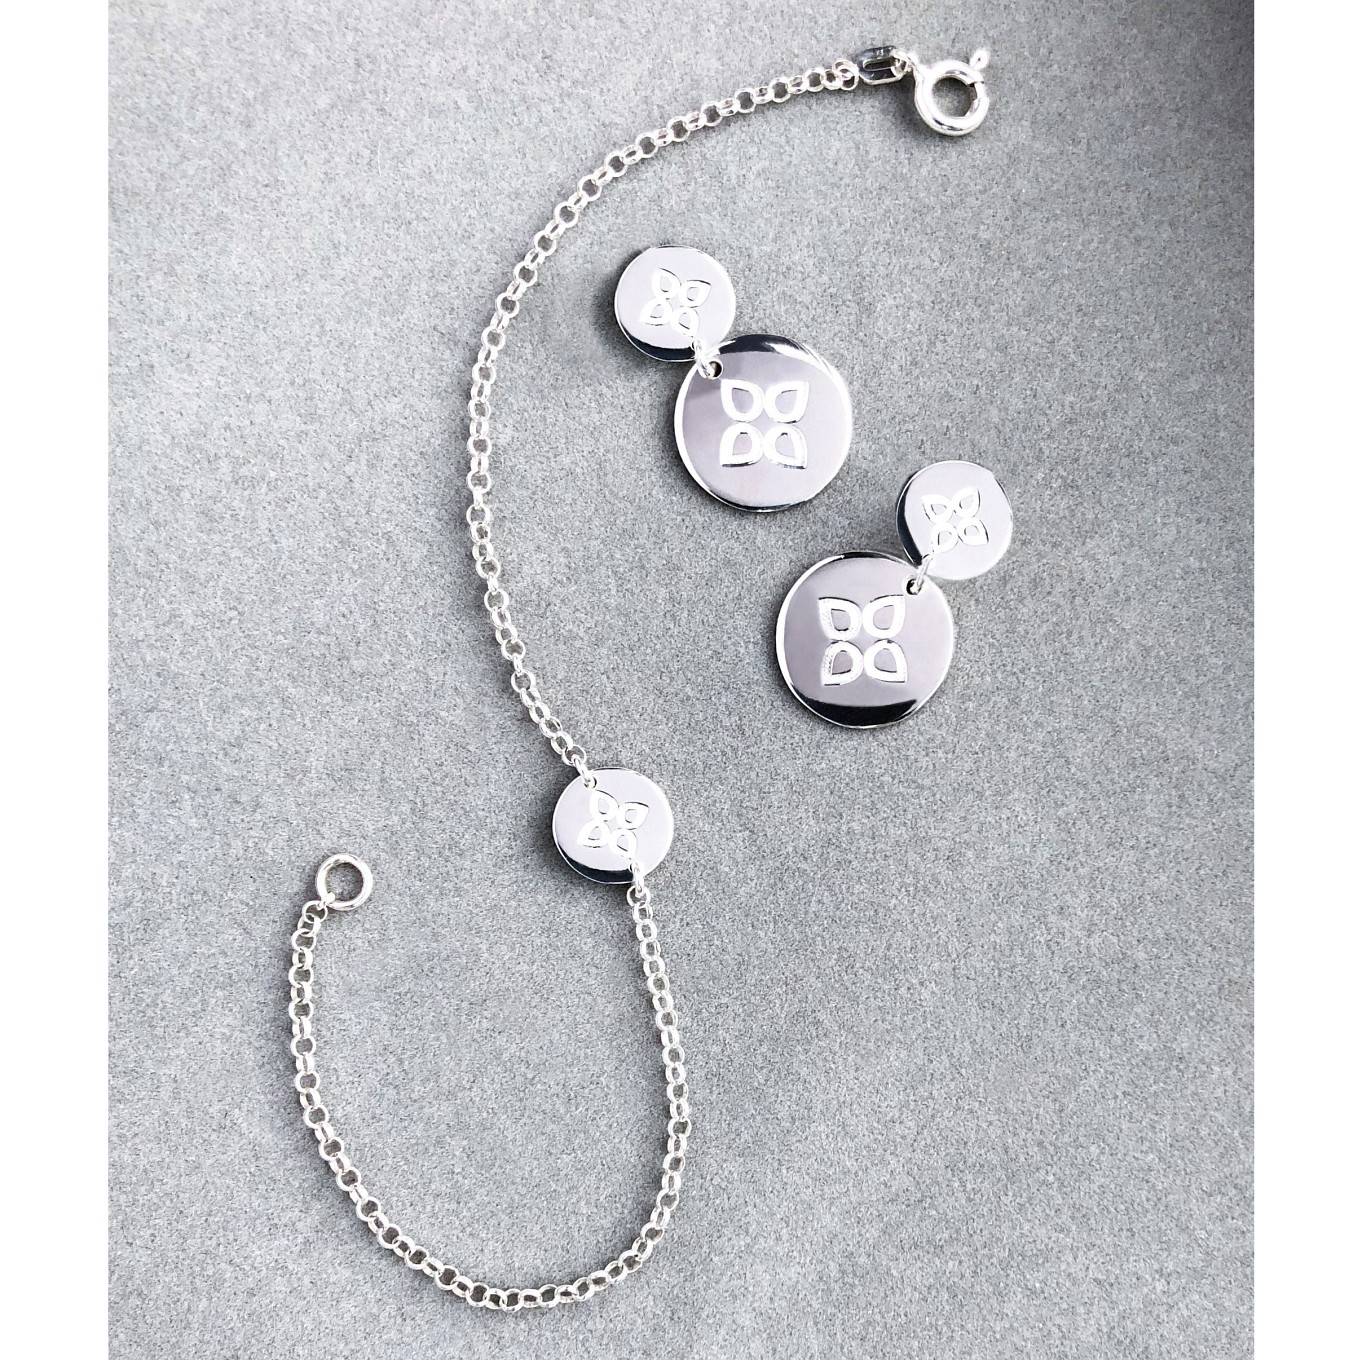 Love disc earrings & bracelet in sterling